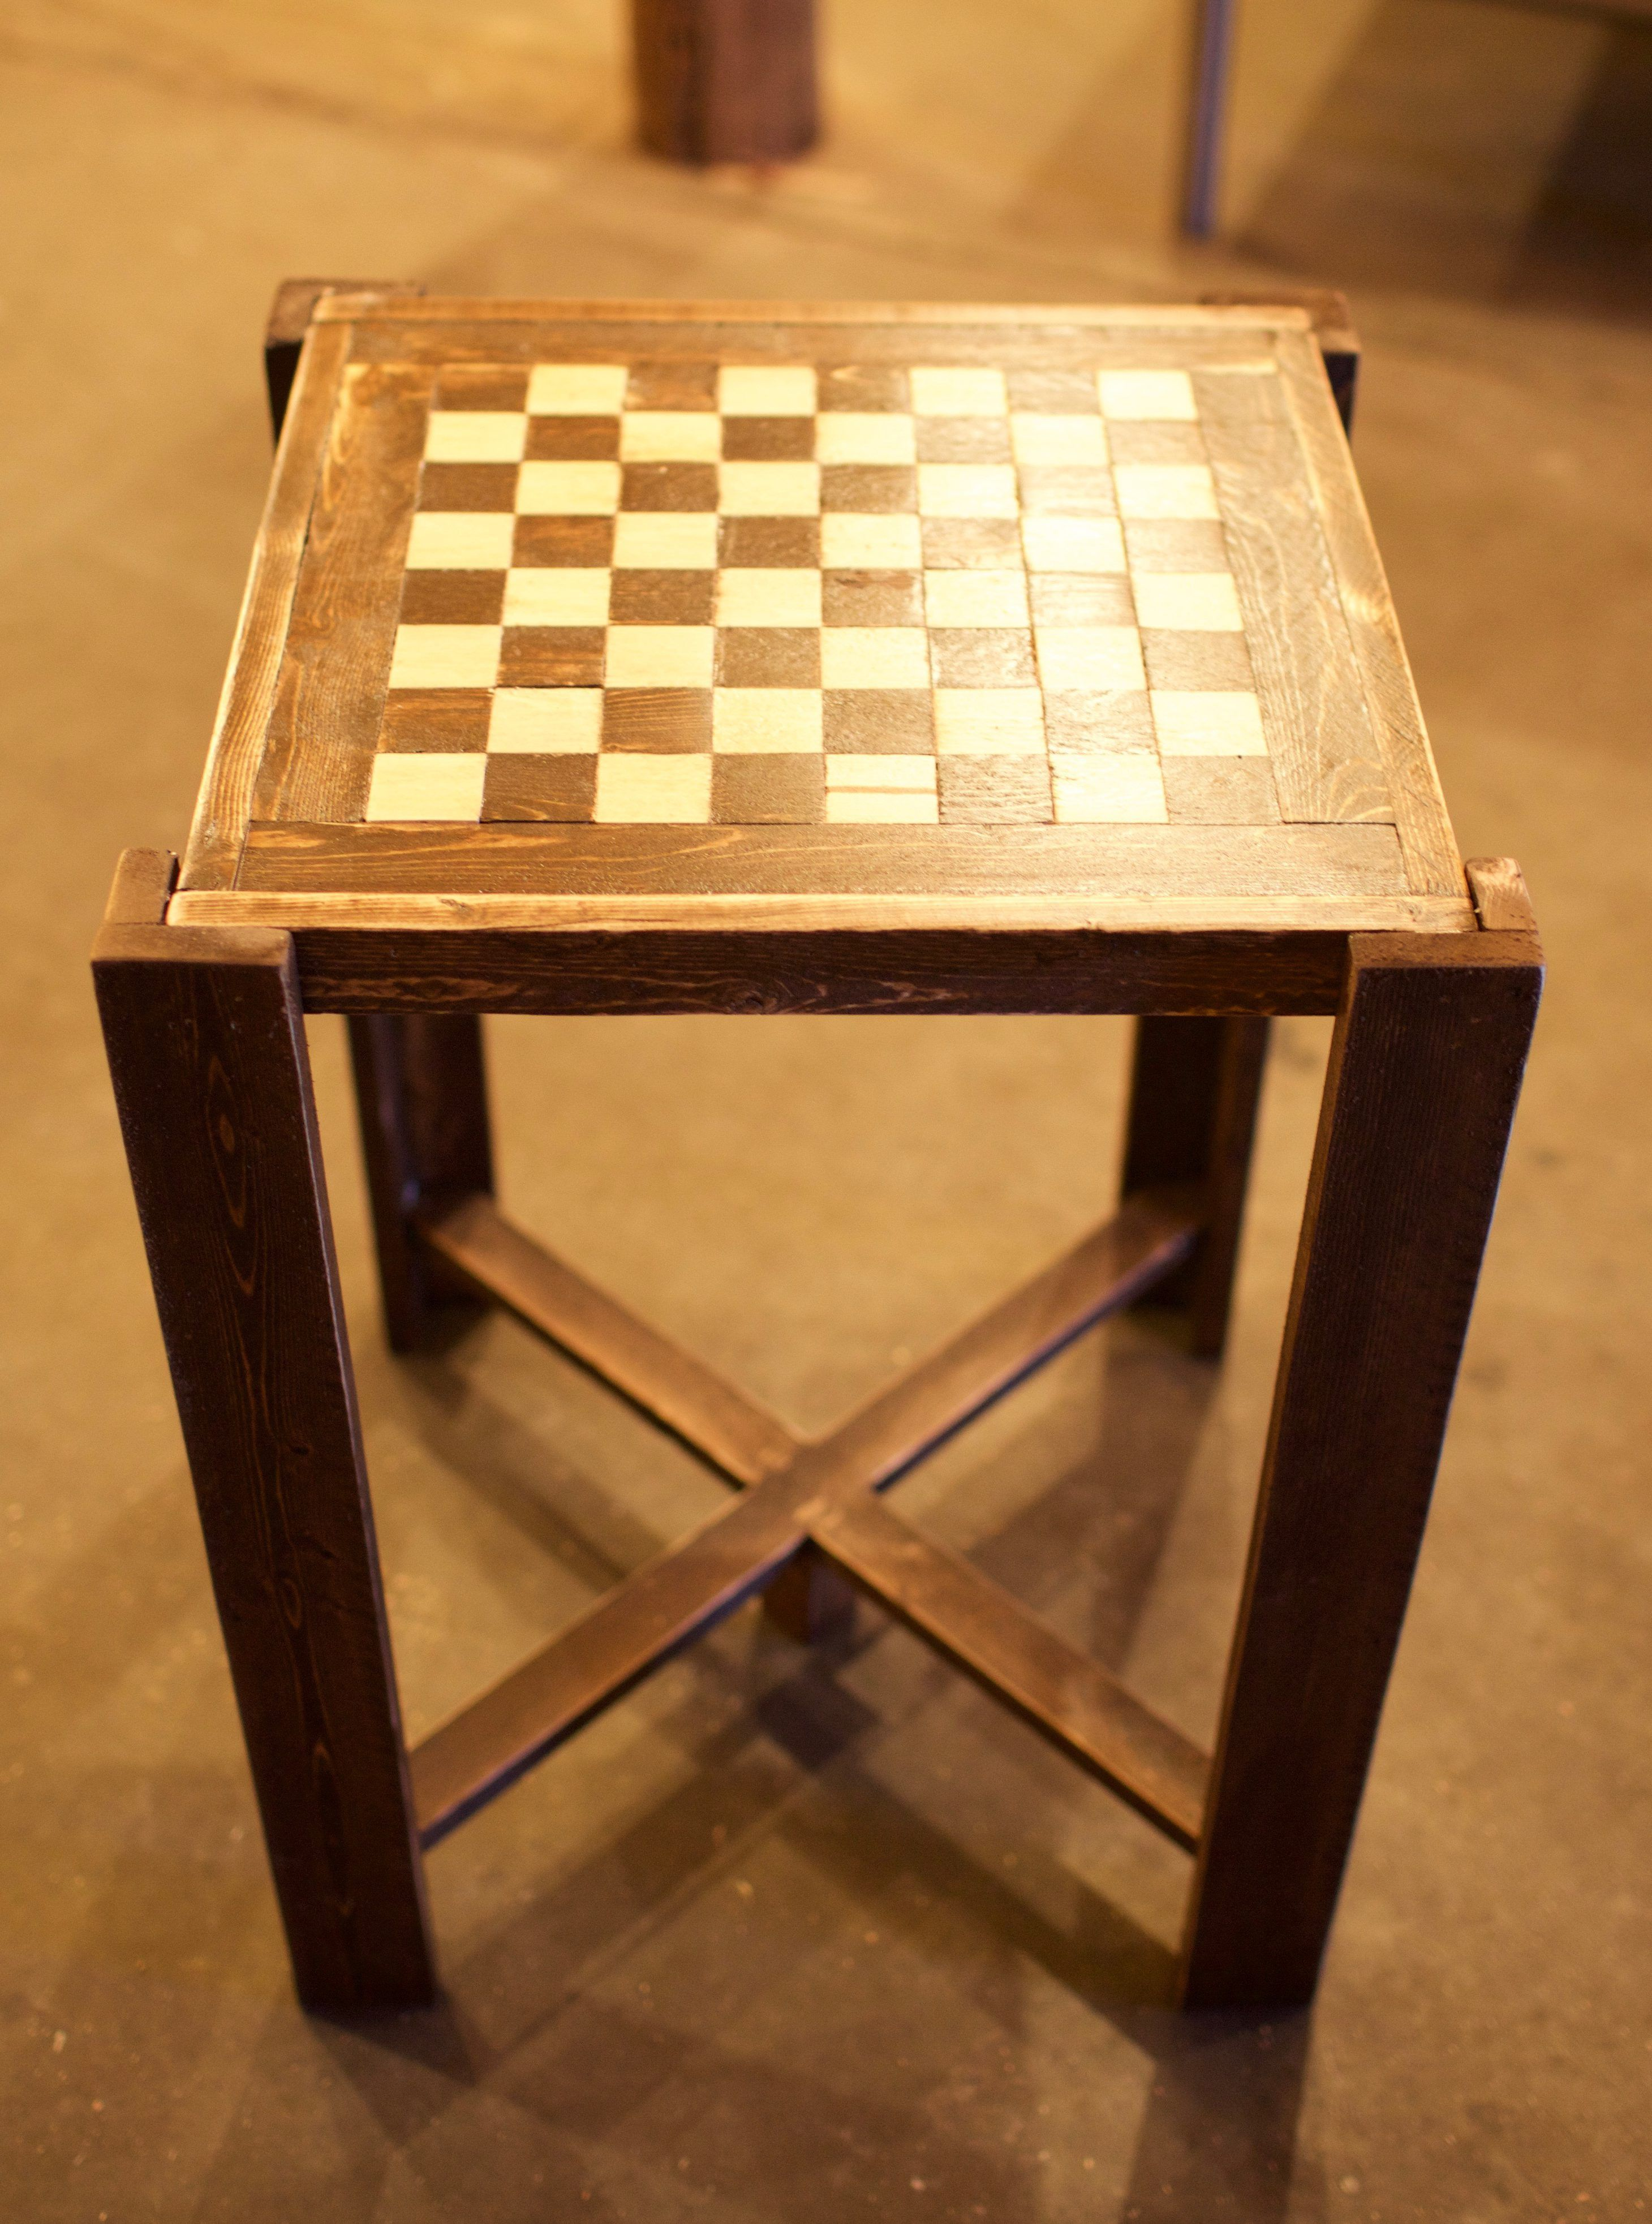 Diy Chess Board Table Plans By Sunnyand79 In 2019 Chess